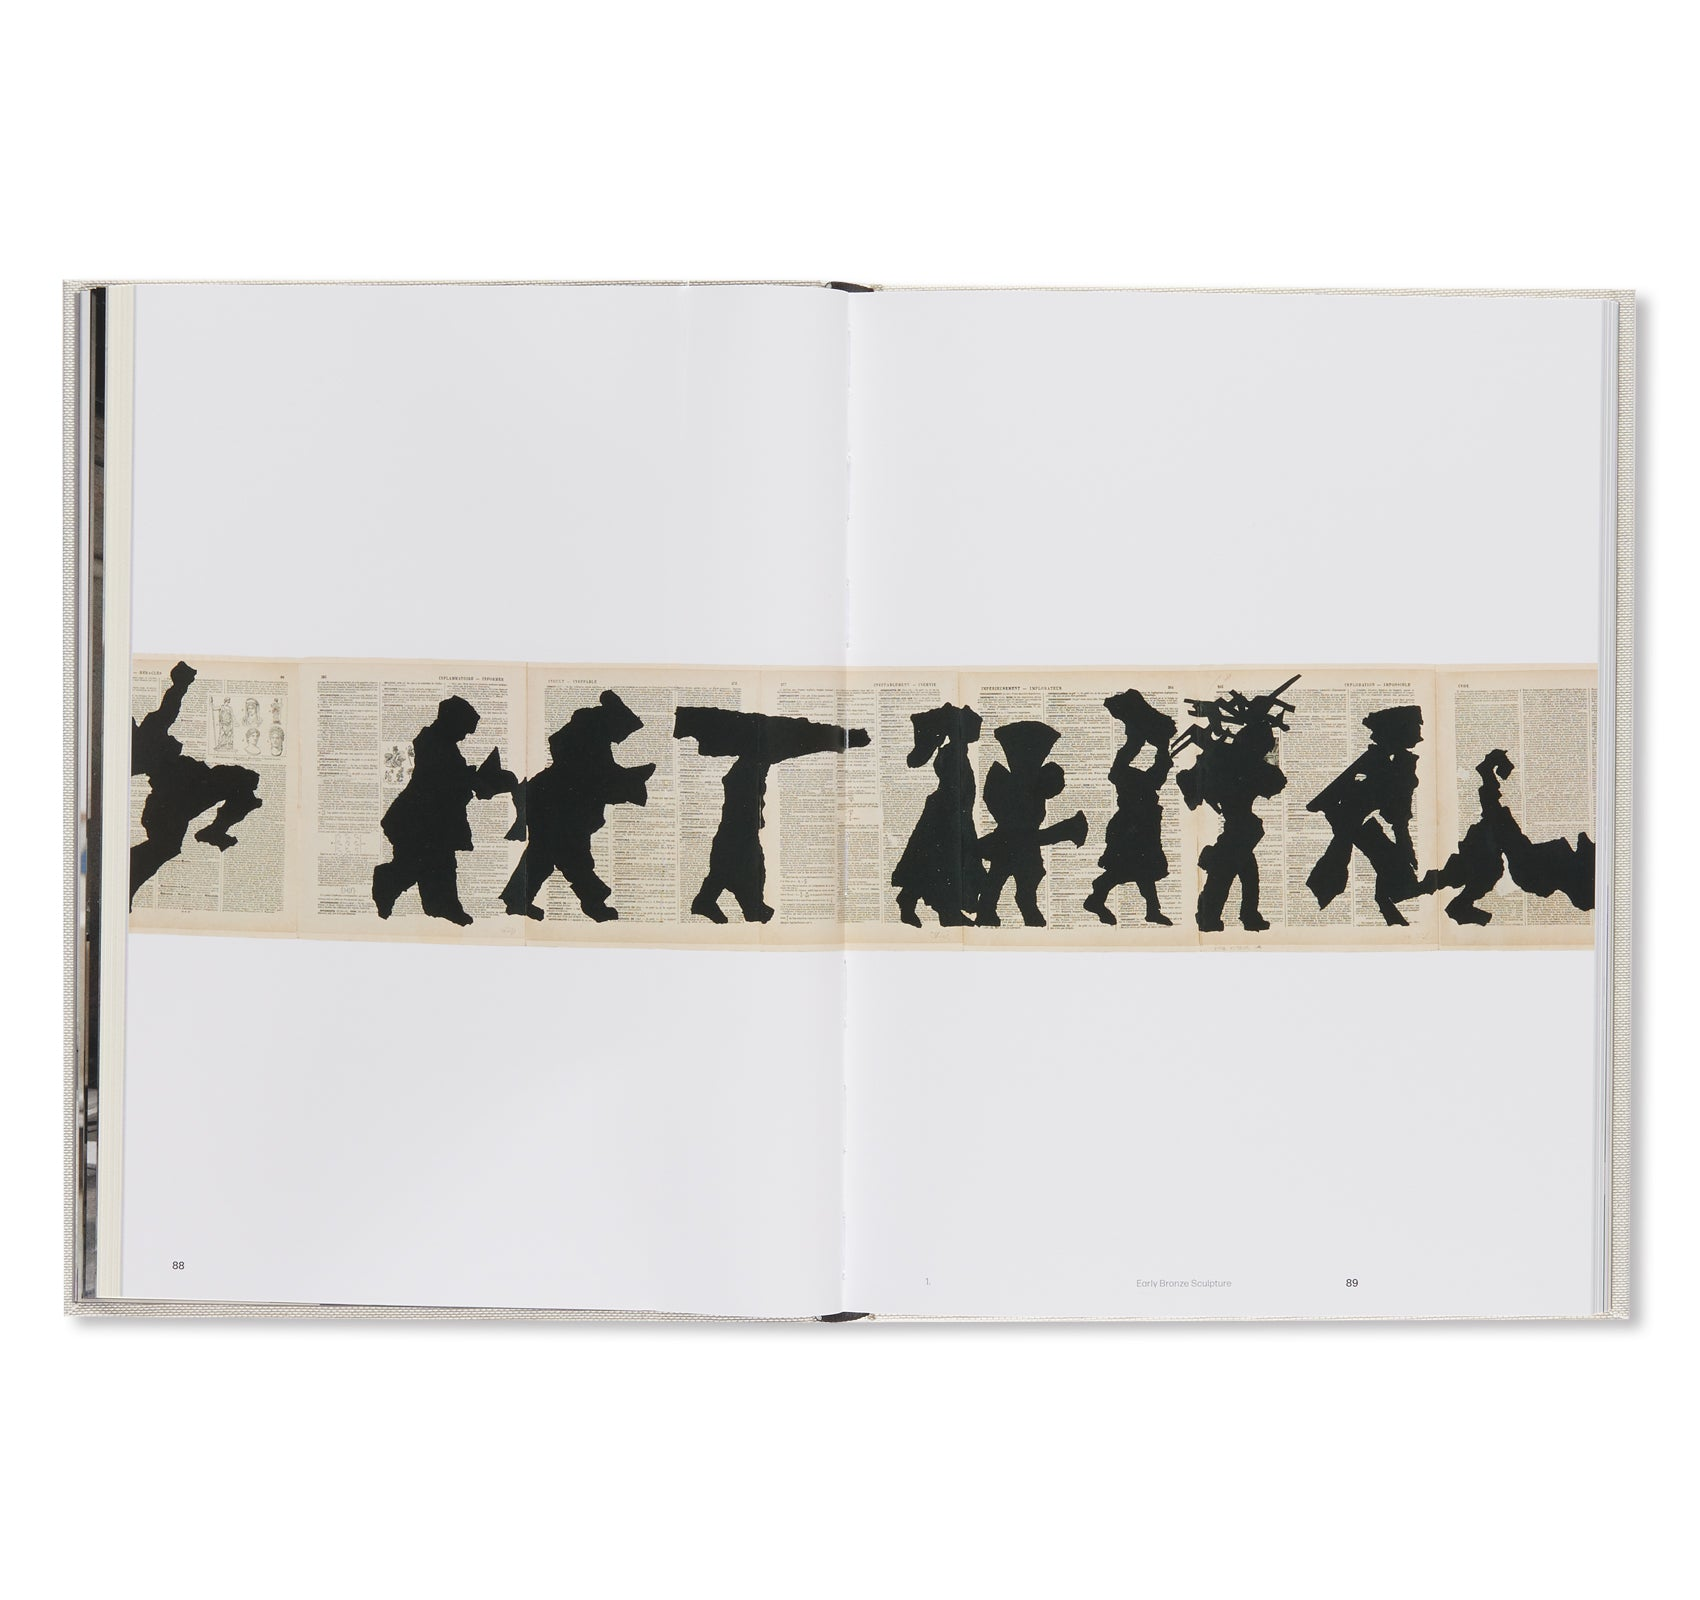 WHY SHOULD I HESITATE by William Kentridge [SPECIAL EDITION]